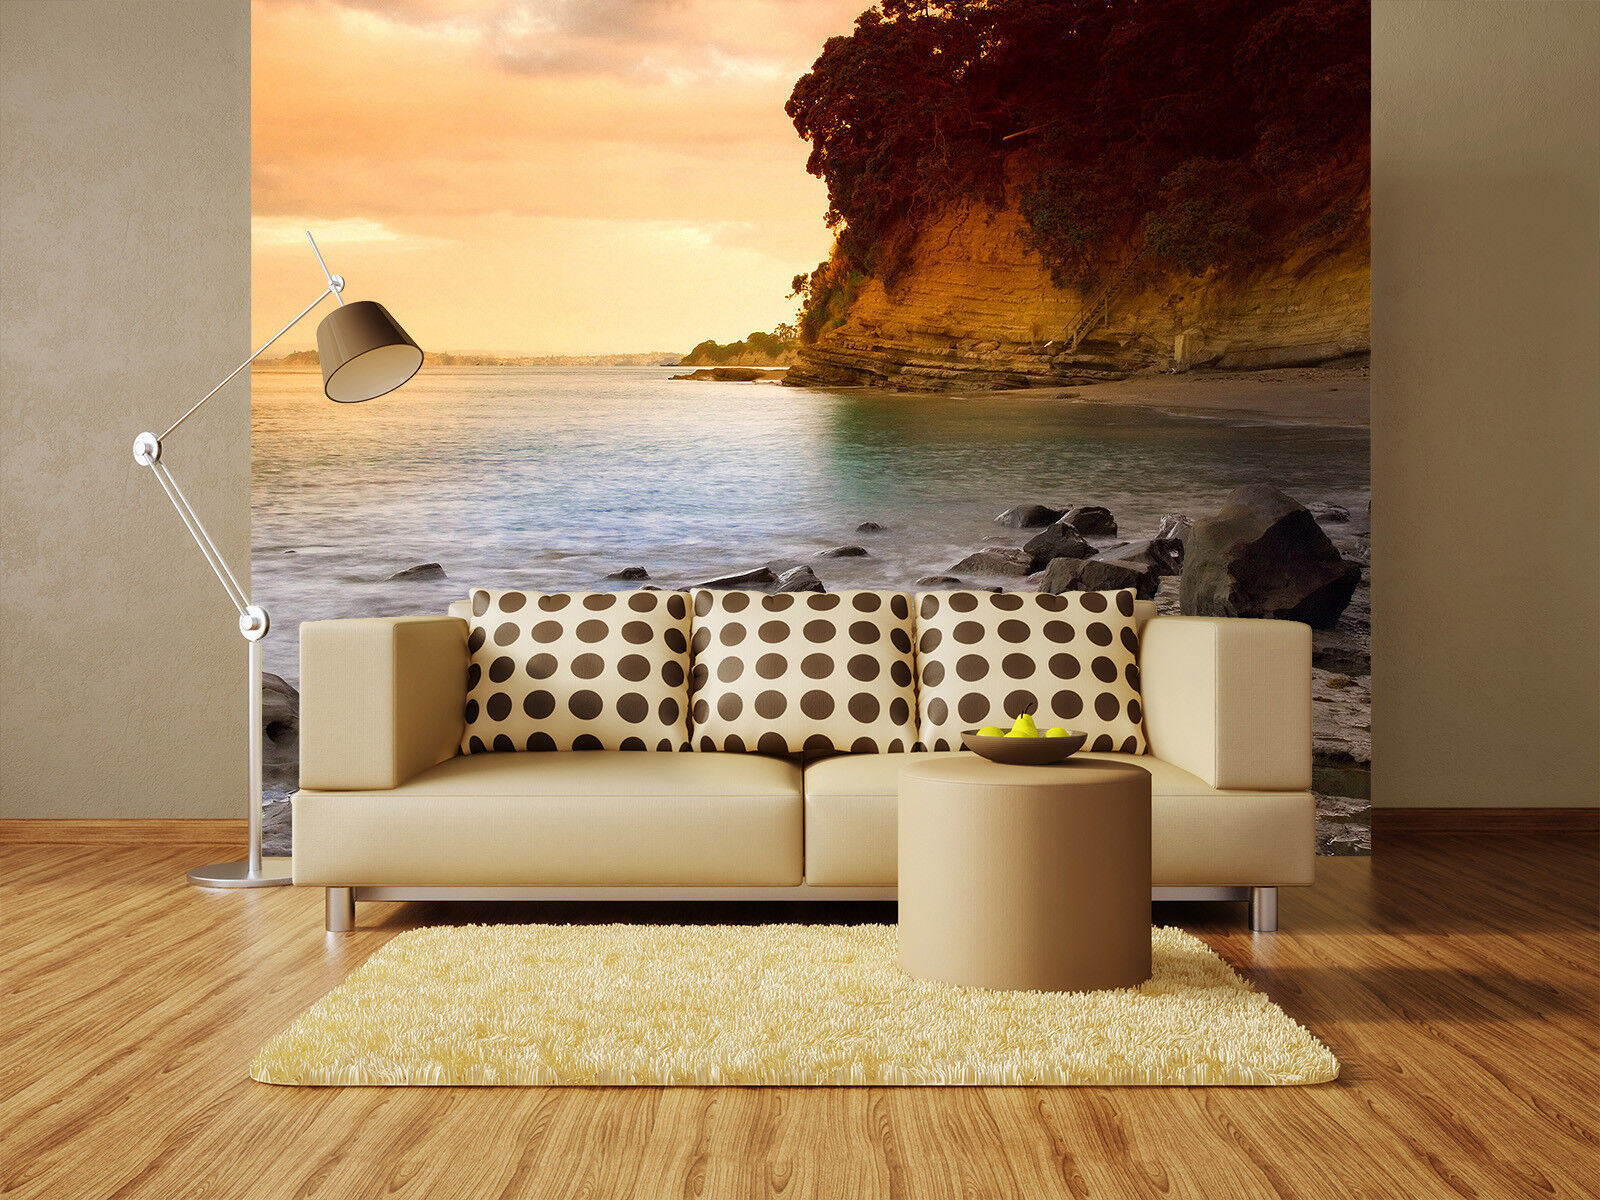 3D Mountain Sky Lake8 Wallpaper Mural Paper Wall Print Wallpaper Murals UK Lemon